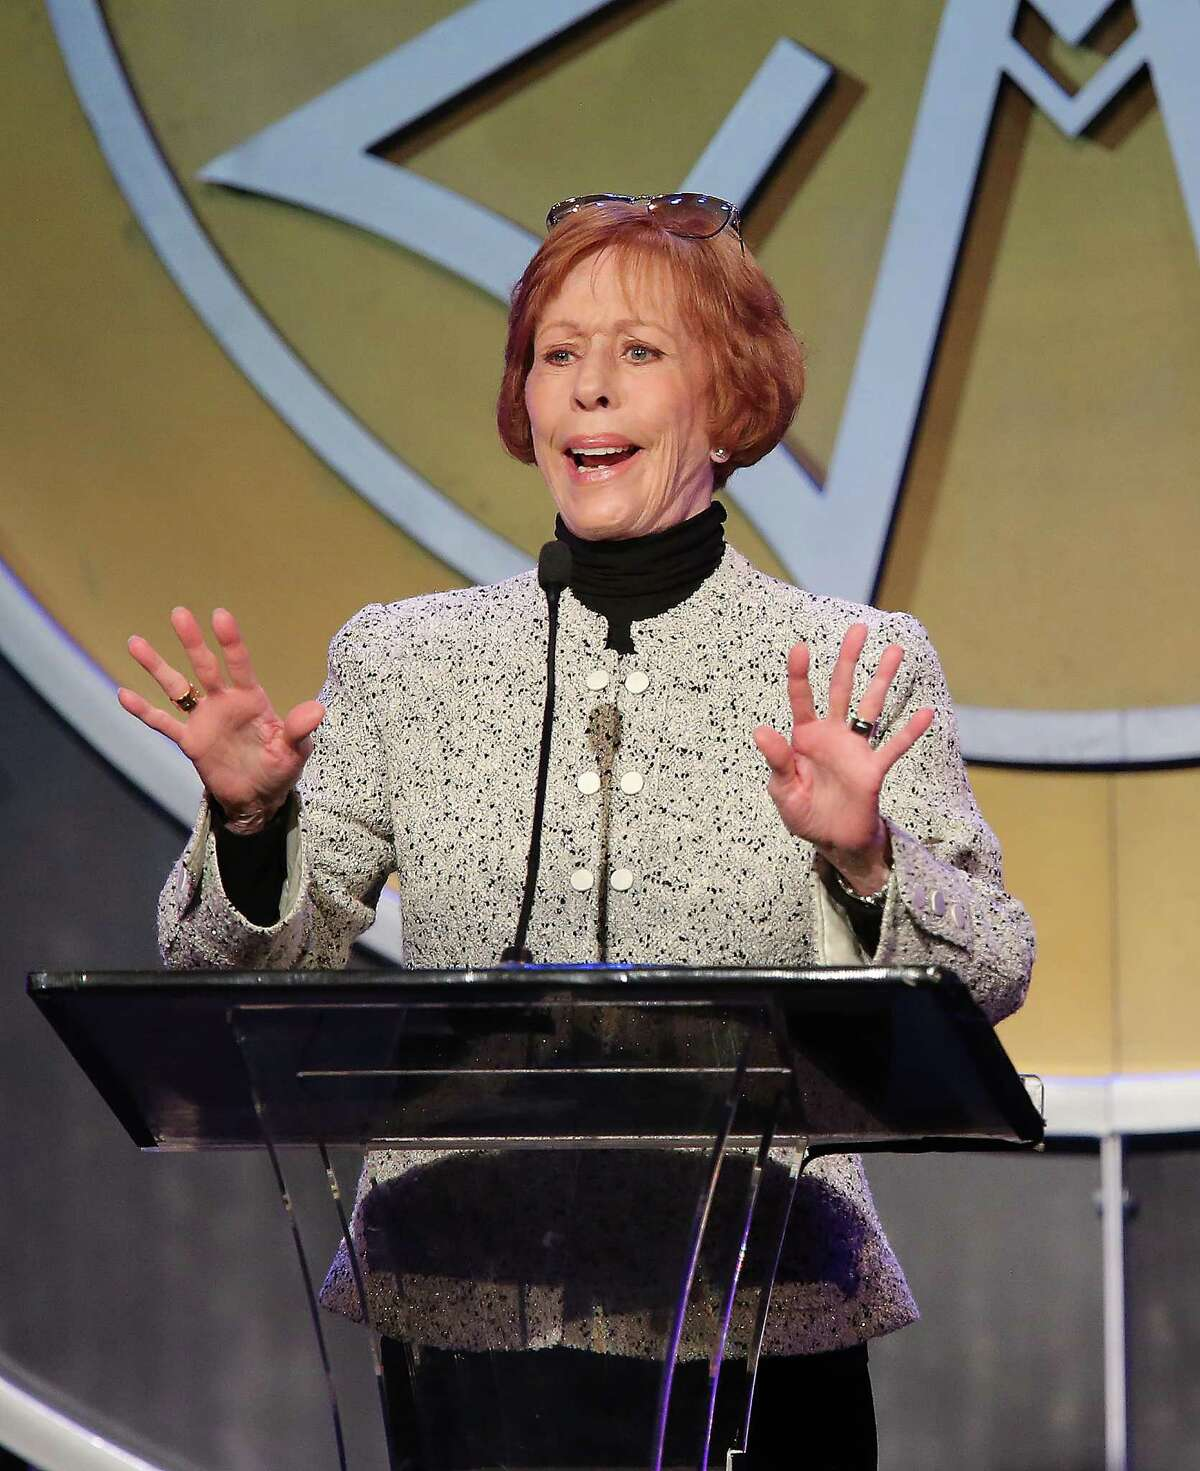 Carol Burnett will be honored in 2016 with a Texas Film Award by the Austin Film Society.